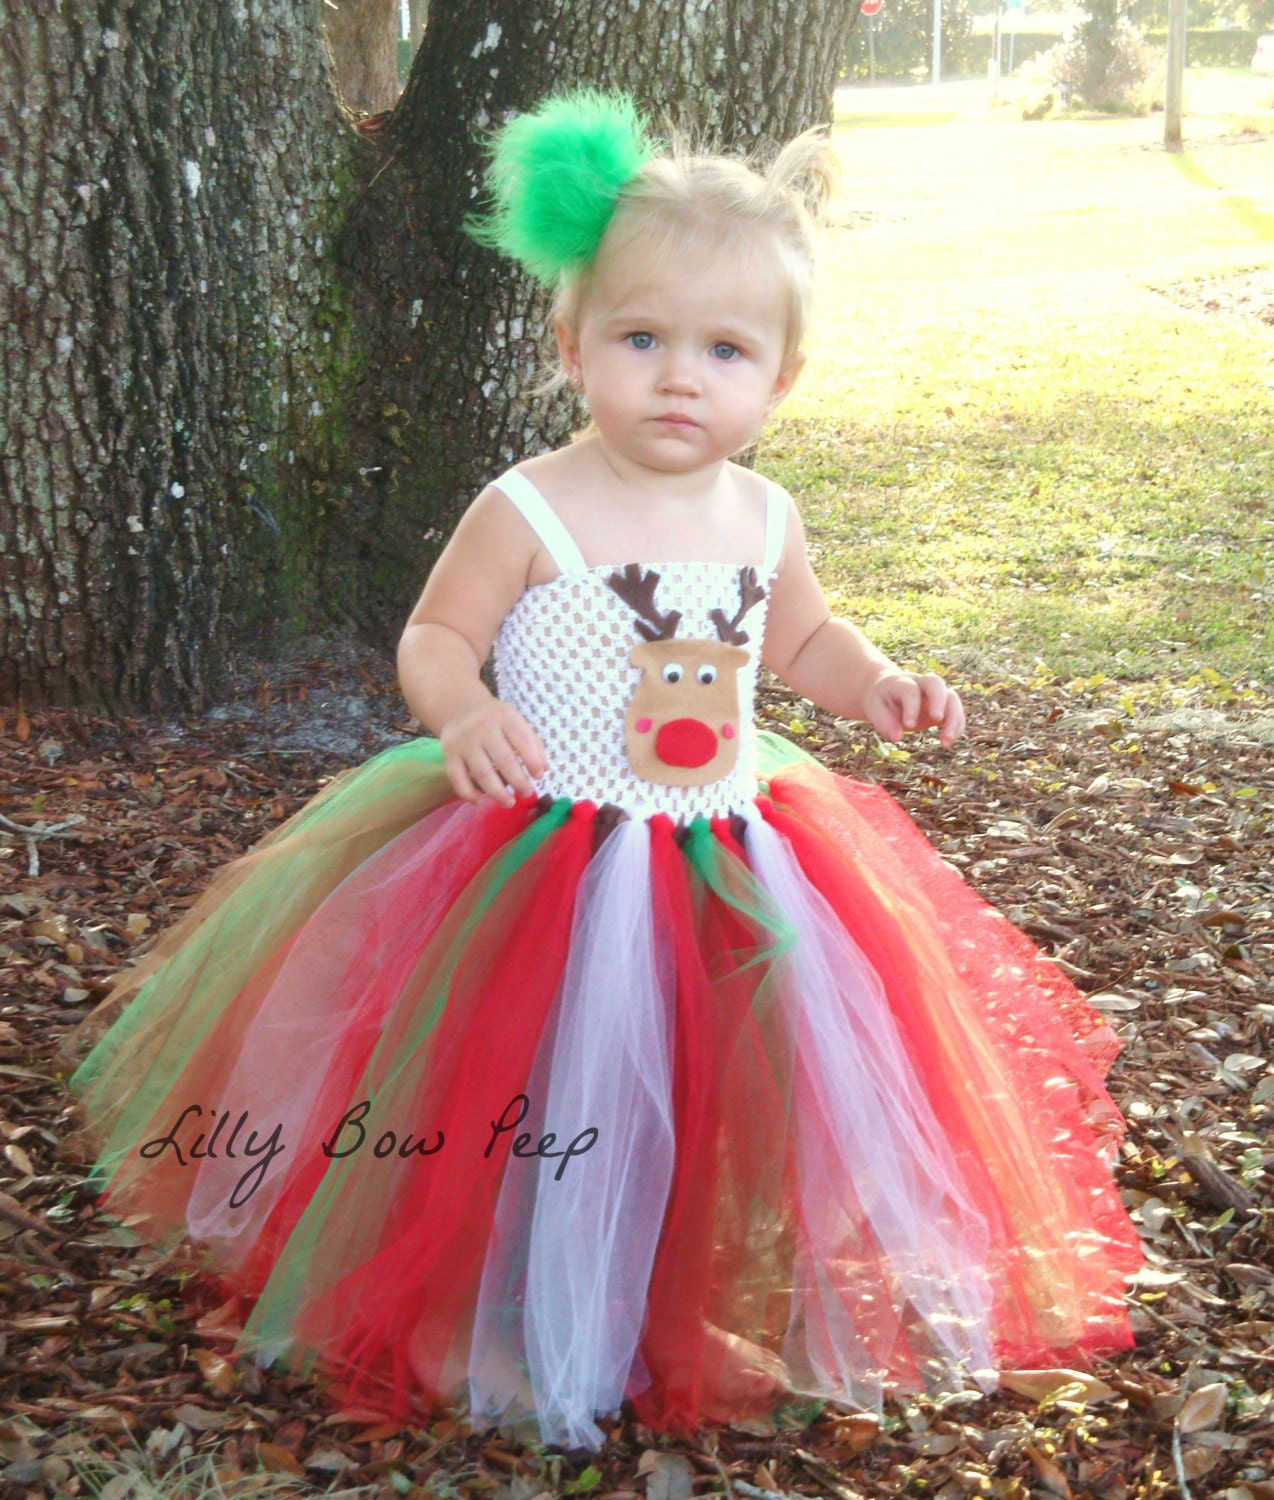 She'll love the twirl-worthy flourish of this tutu dress bedecked in festive colors to inspire her holiday spirit. Full graphic text: Merry Christmas.